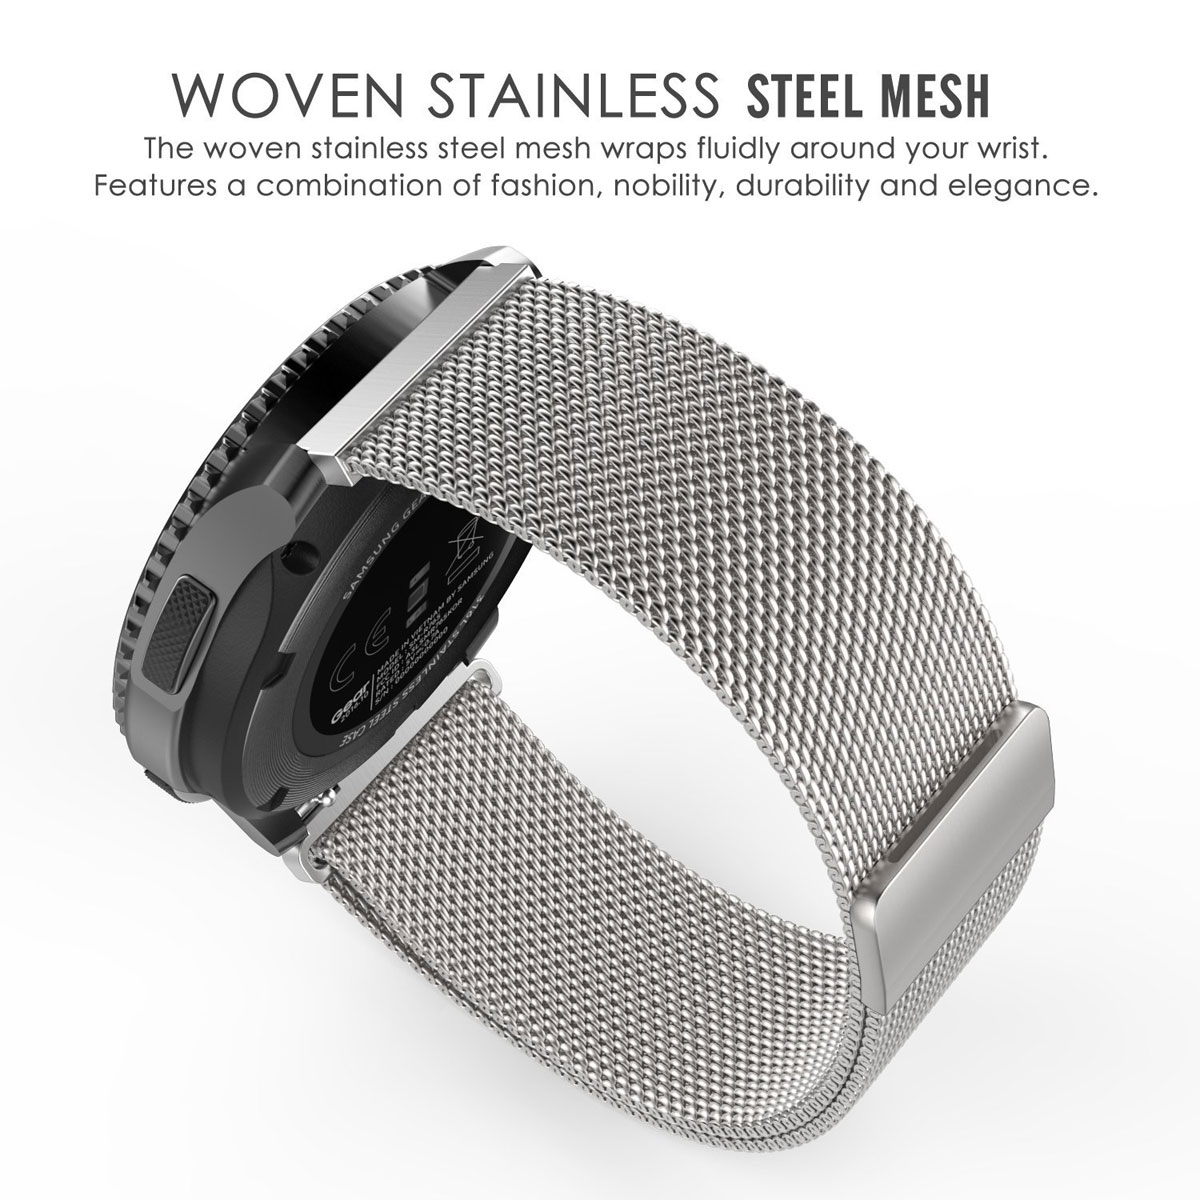 wrist classic stainless mesh clock metal watch quartz relogio sliver watches ladies zarpra band business women product steel